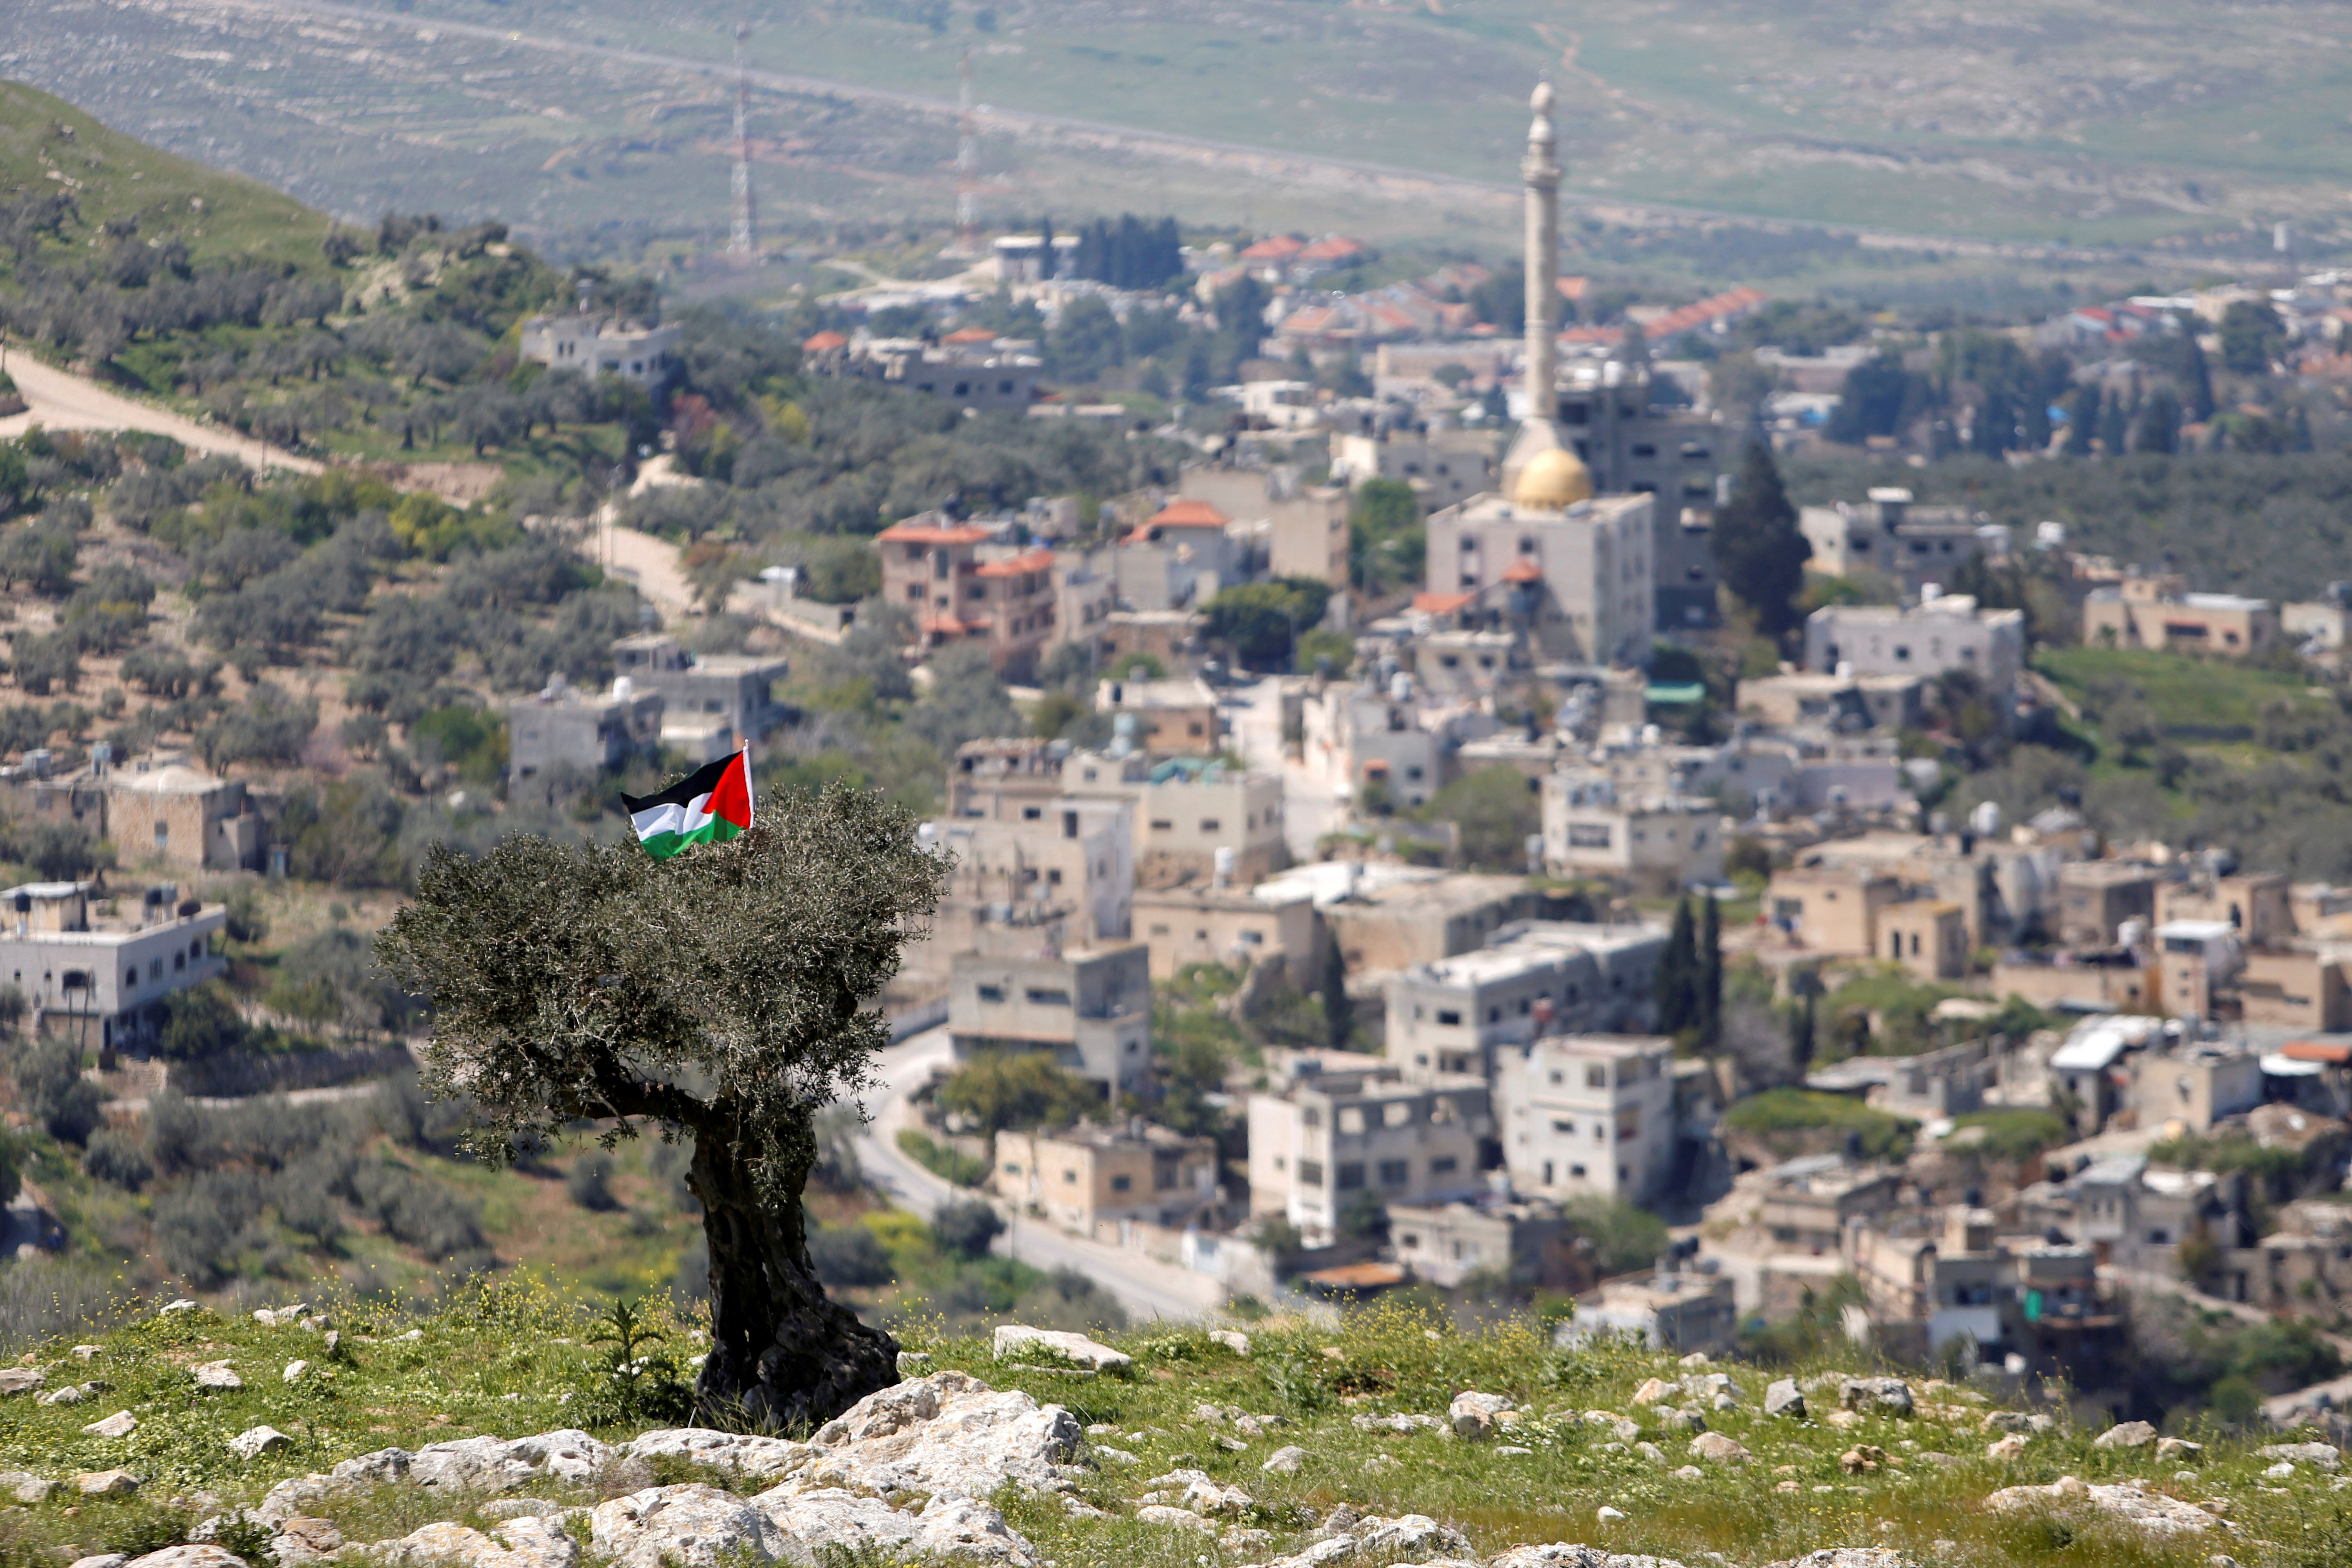 A Palestinian flag hangs on a tree during a protest against Jewish settlements in An-Naqura village near Nablus, in the Israeli-occupied West Bank March 29, 2021. REUTERS/Raneen Sawafta /File Photo